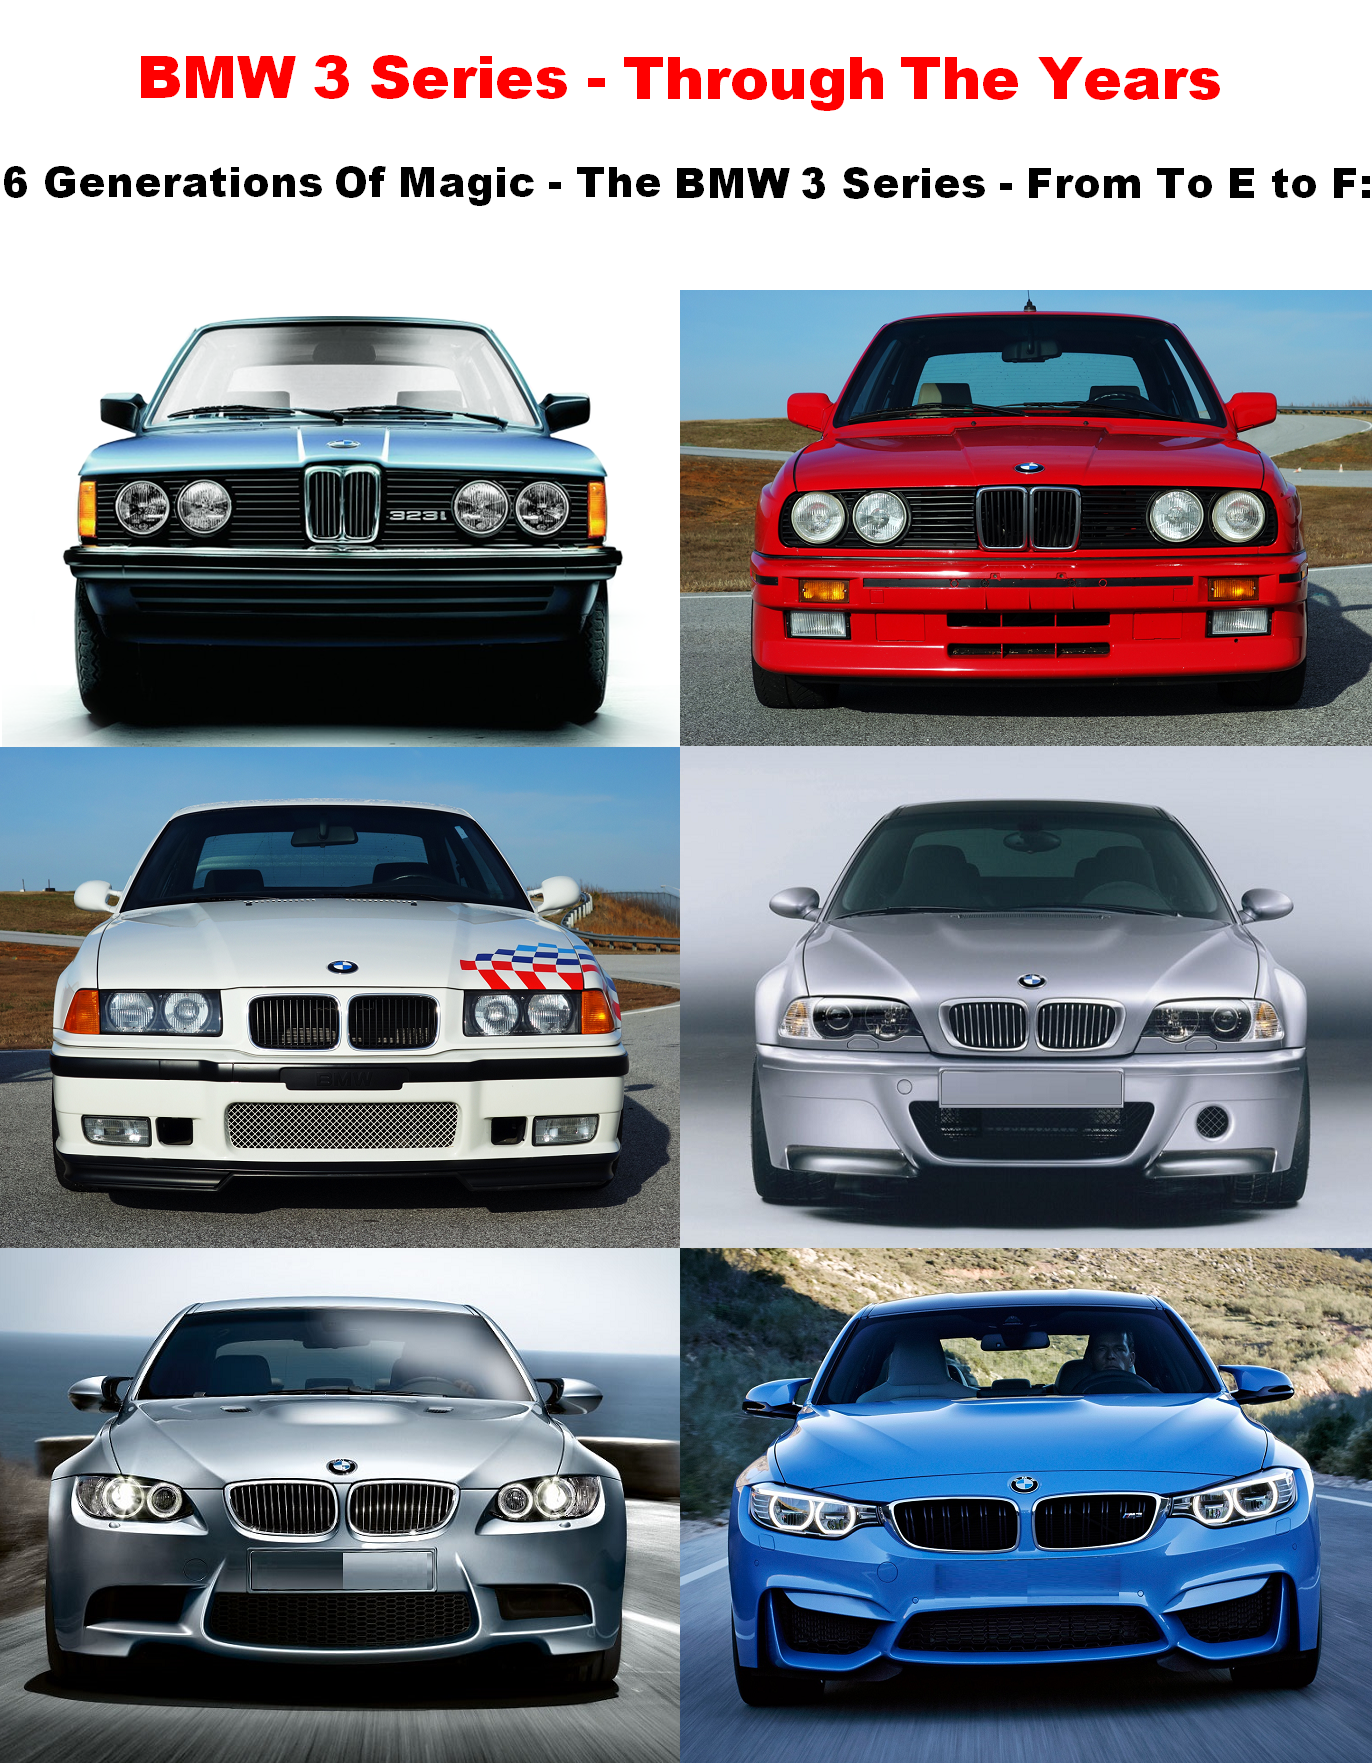 Experience The BMW 3 Series Through The Years - 6 Generations Of Total Magic - From